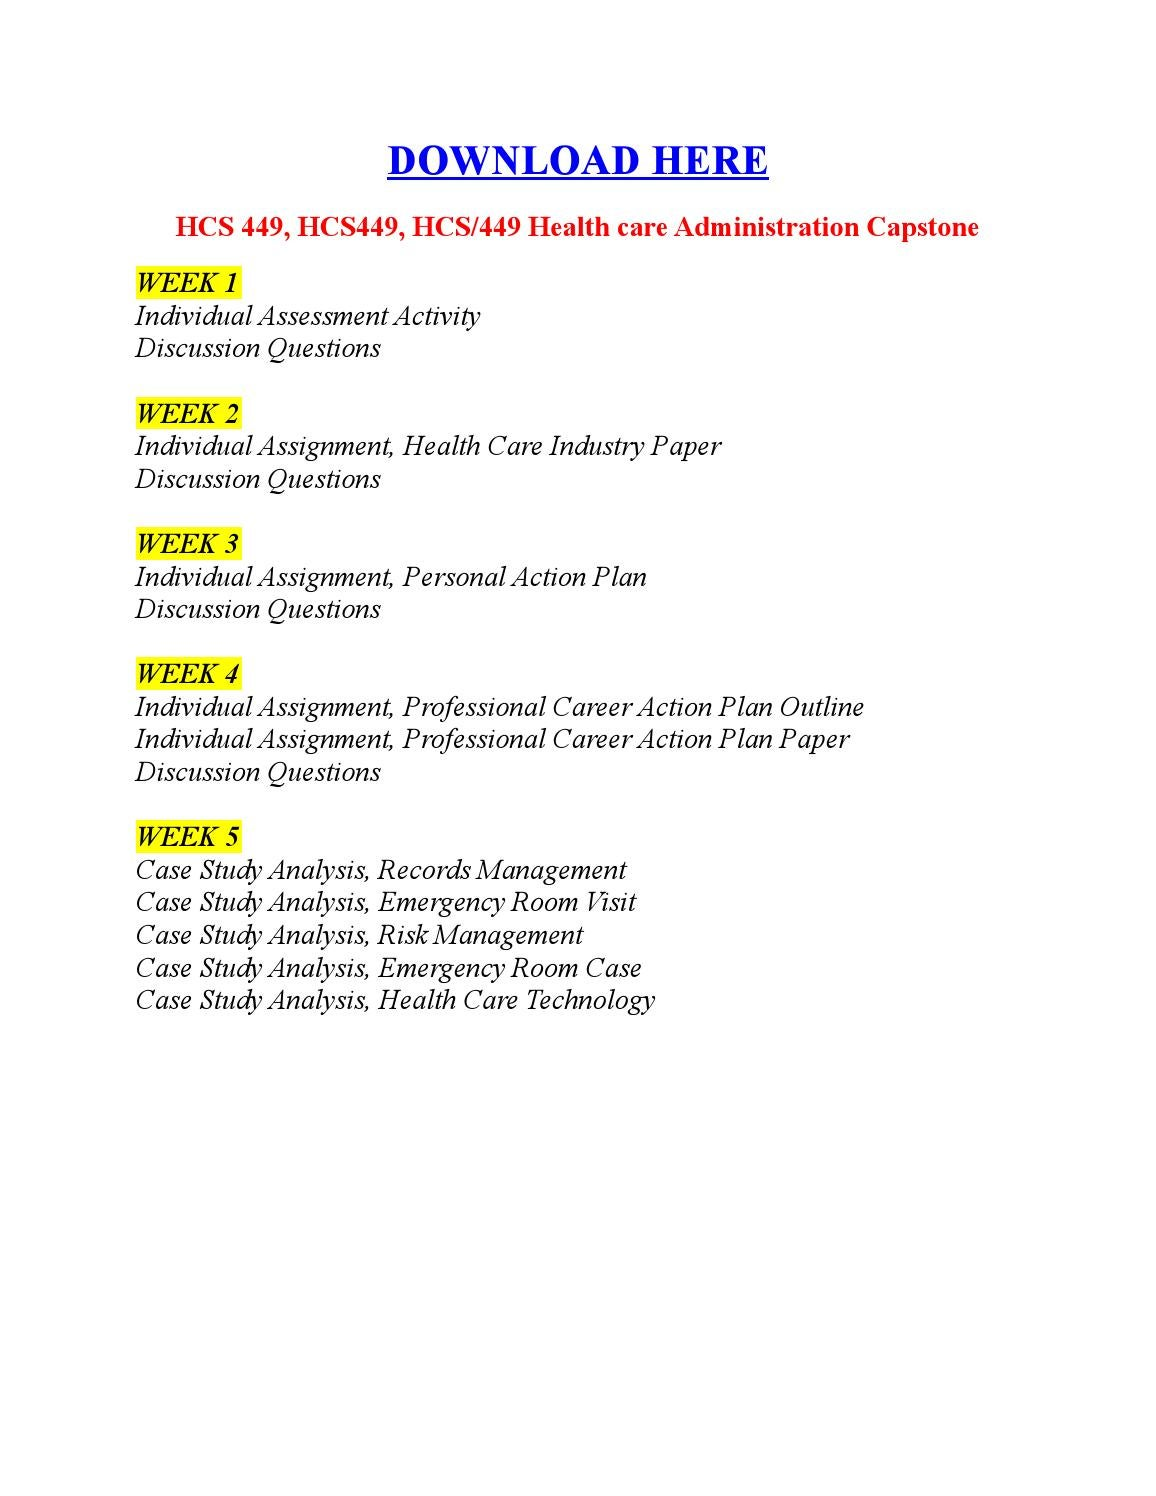 Personal and Professional Healthcare Communication Paper